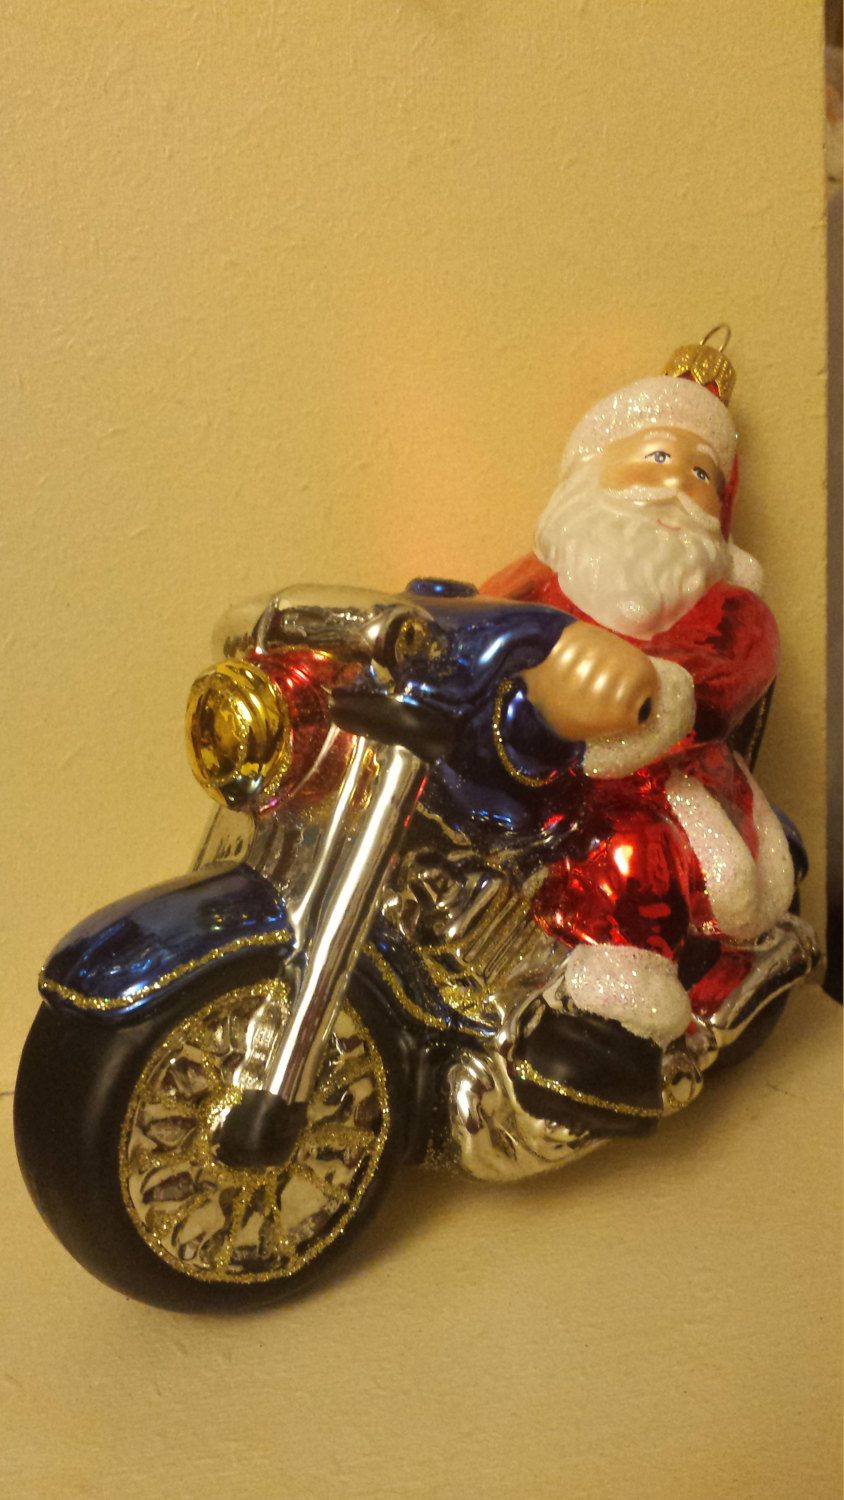 Blown Glass Biker Santa Claus On A Motorbike Christmas Ornament 6 Made In Poland By Ukbeadsonline On Etsy Glass Blowing Vintage Christmas Christmas Ornaments